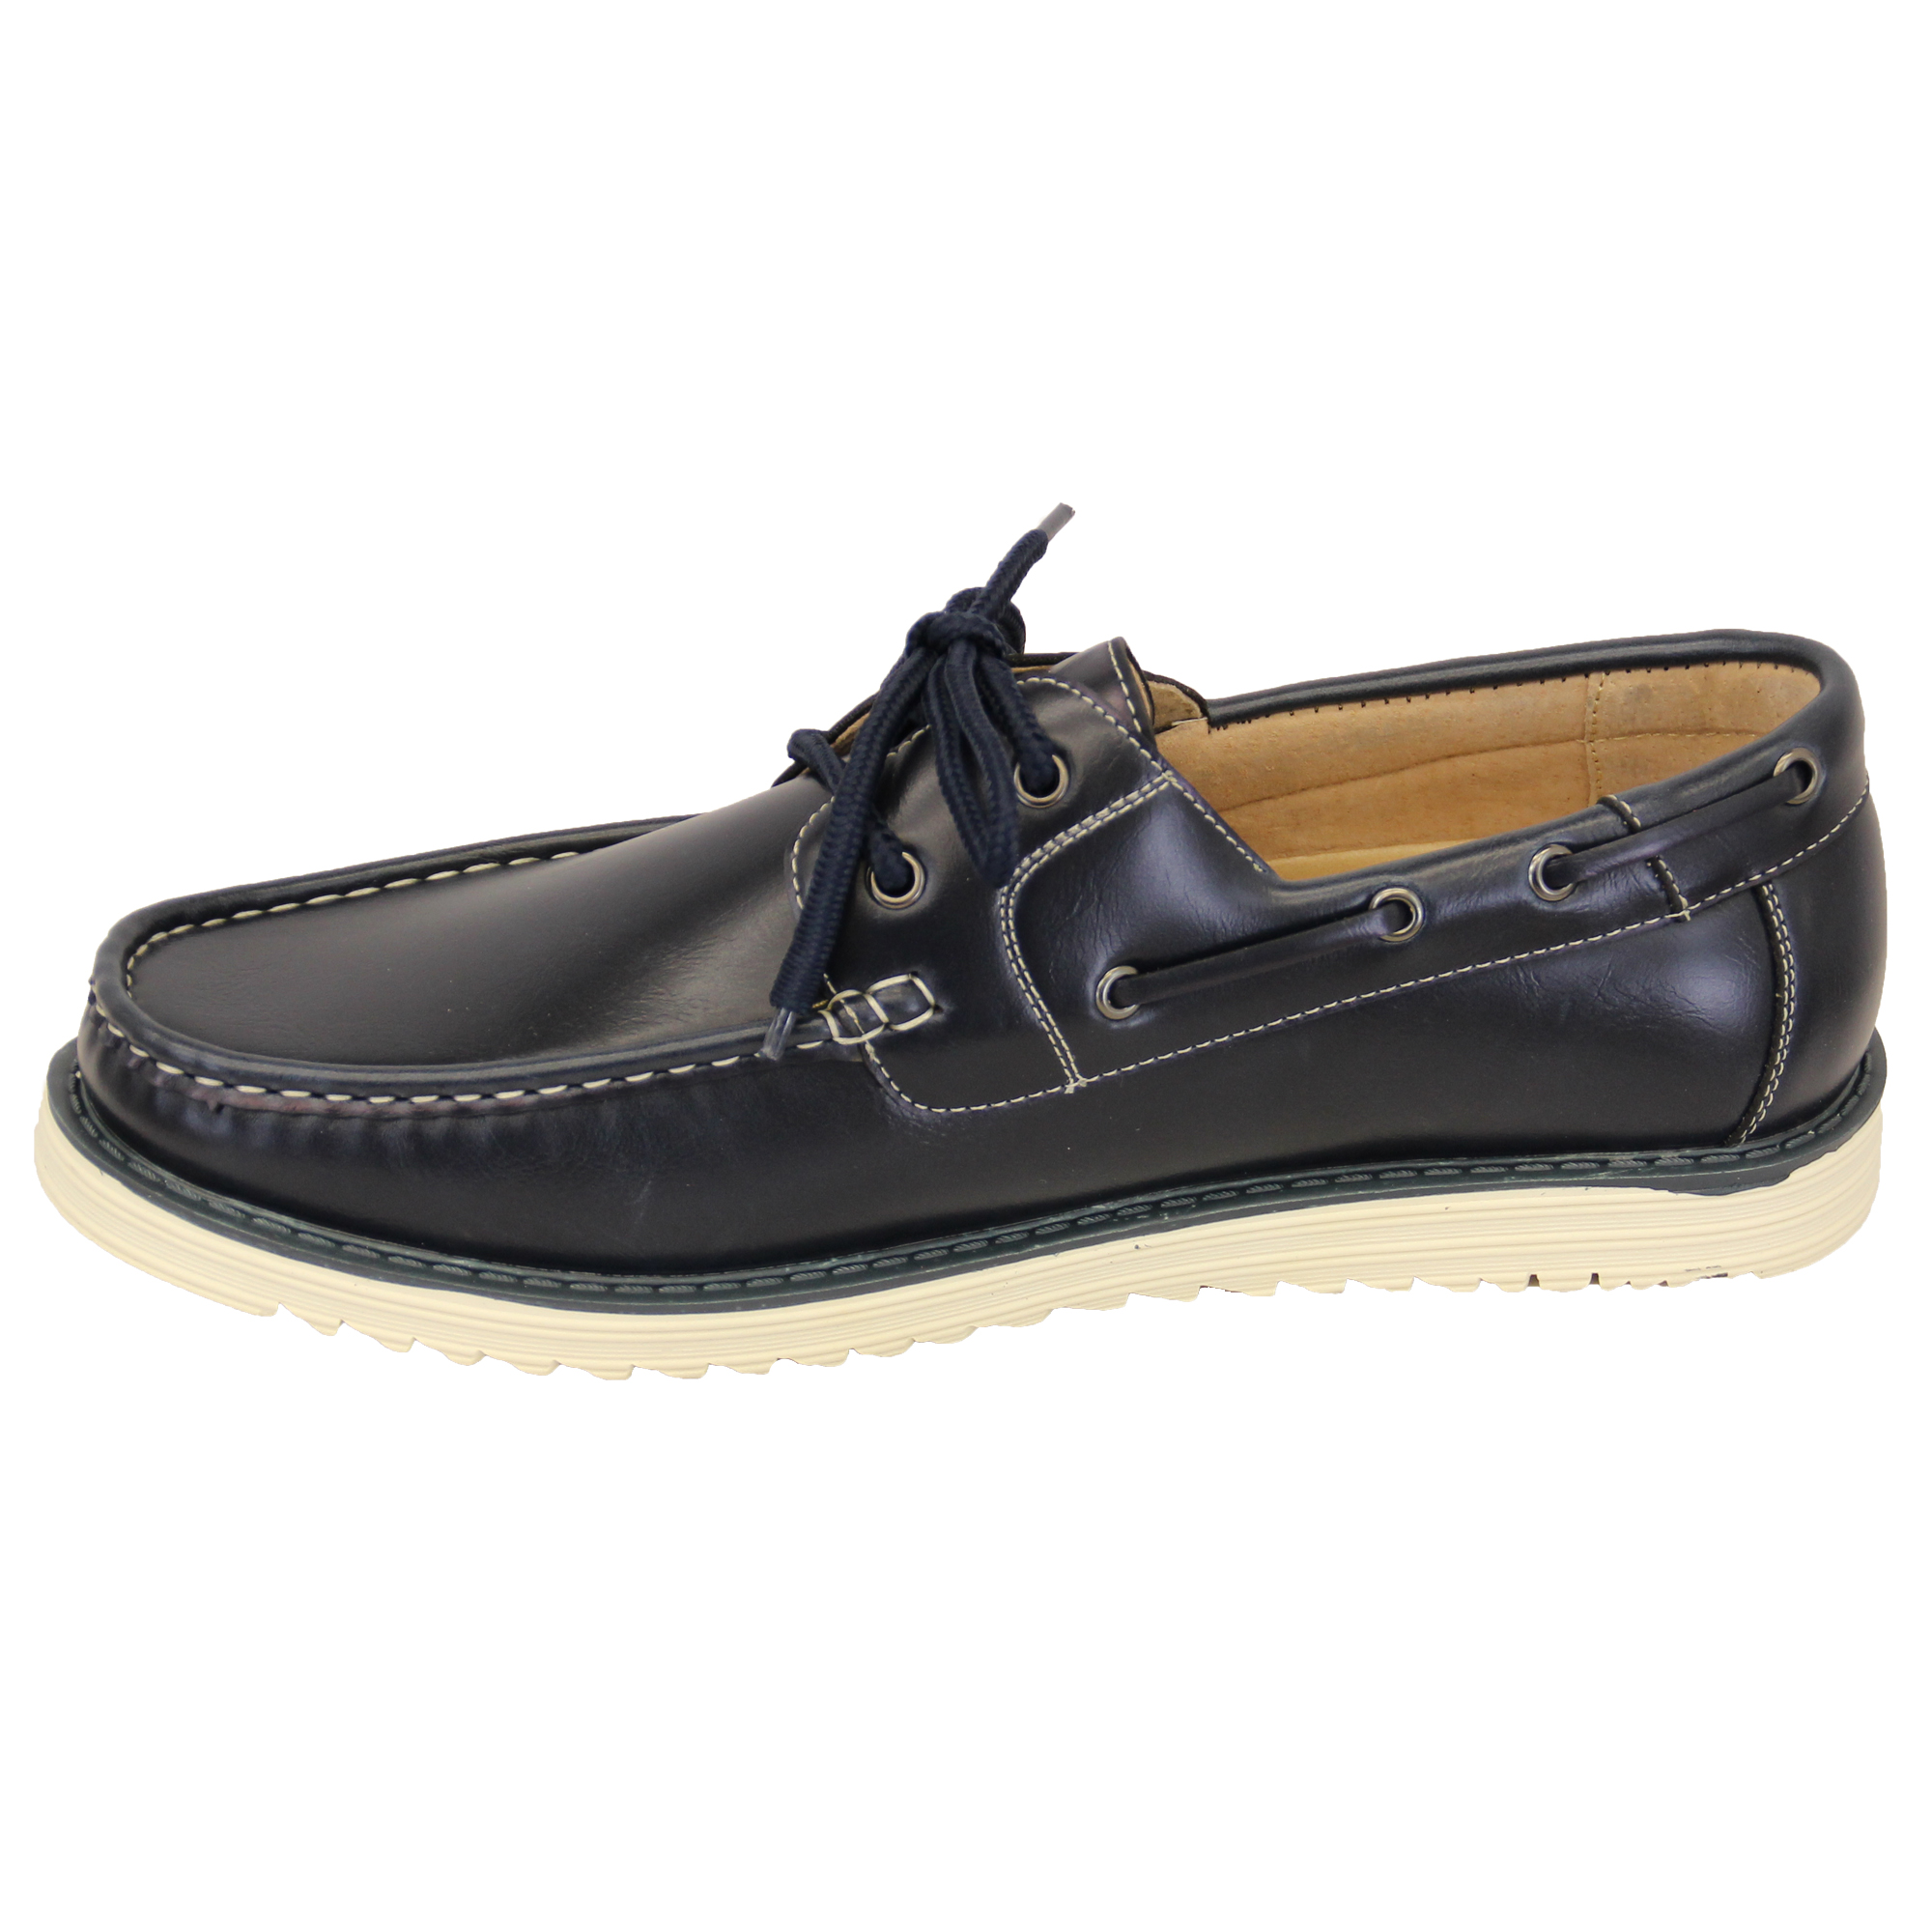 mens leather boat shoes driving lace up deck galax casual